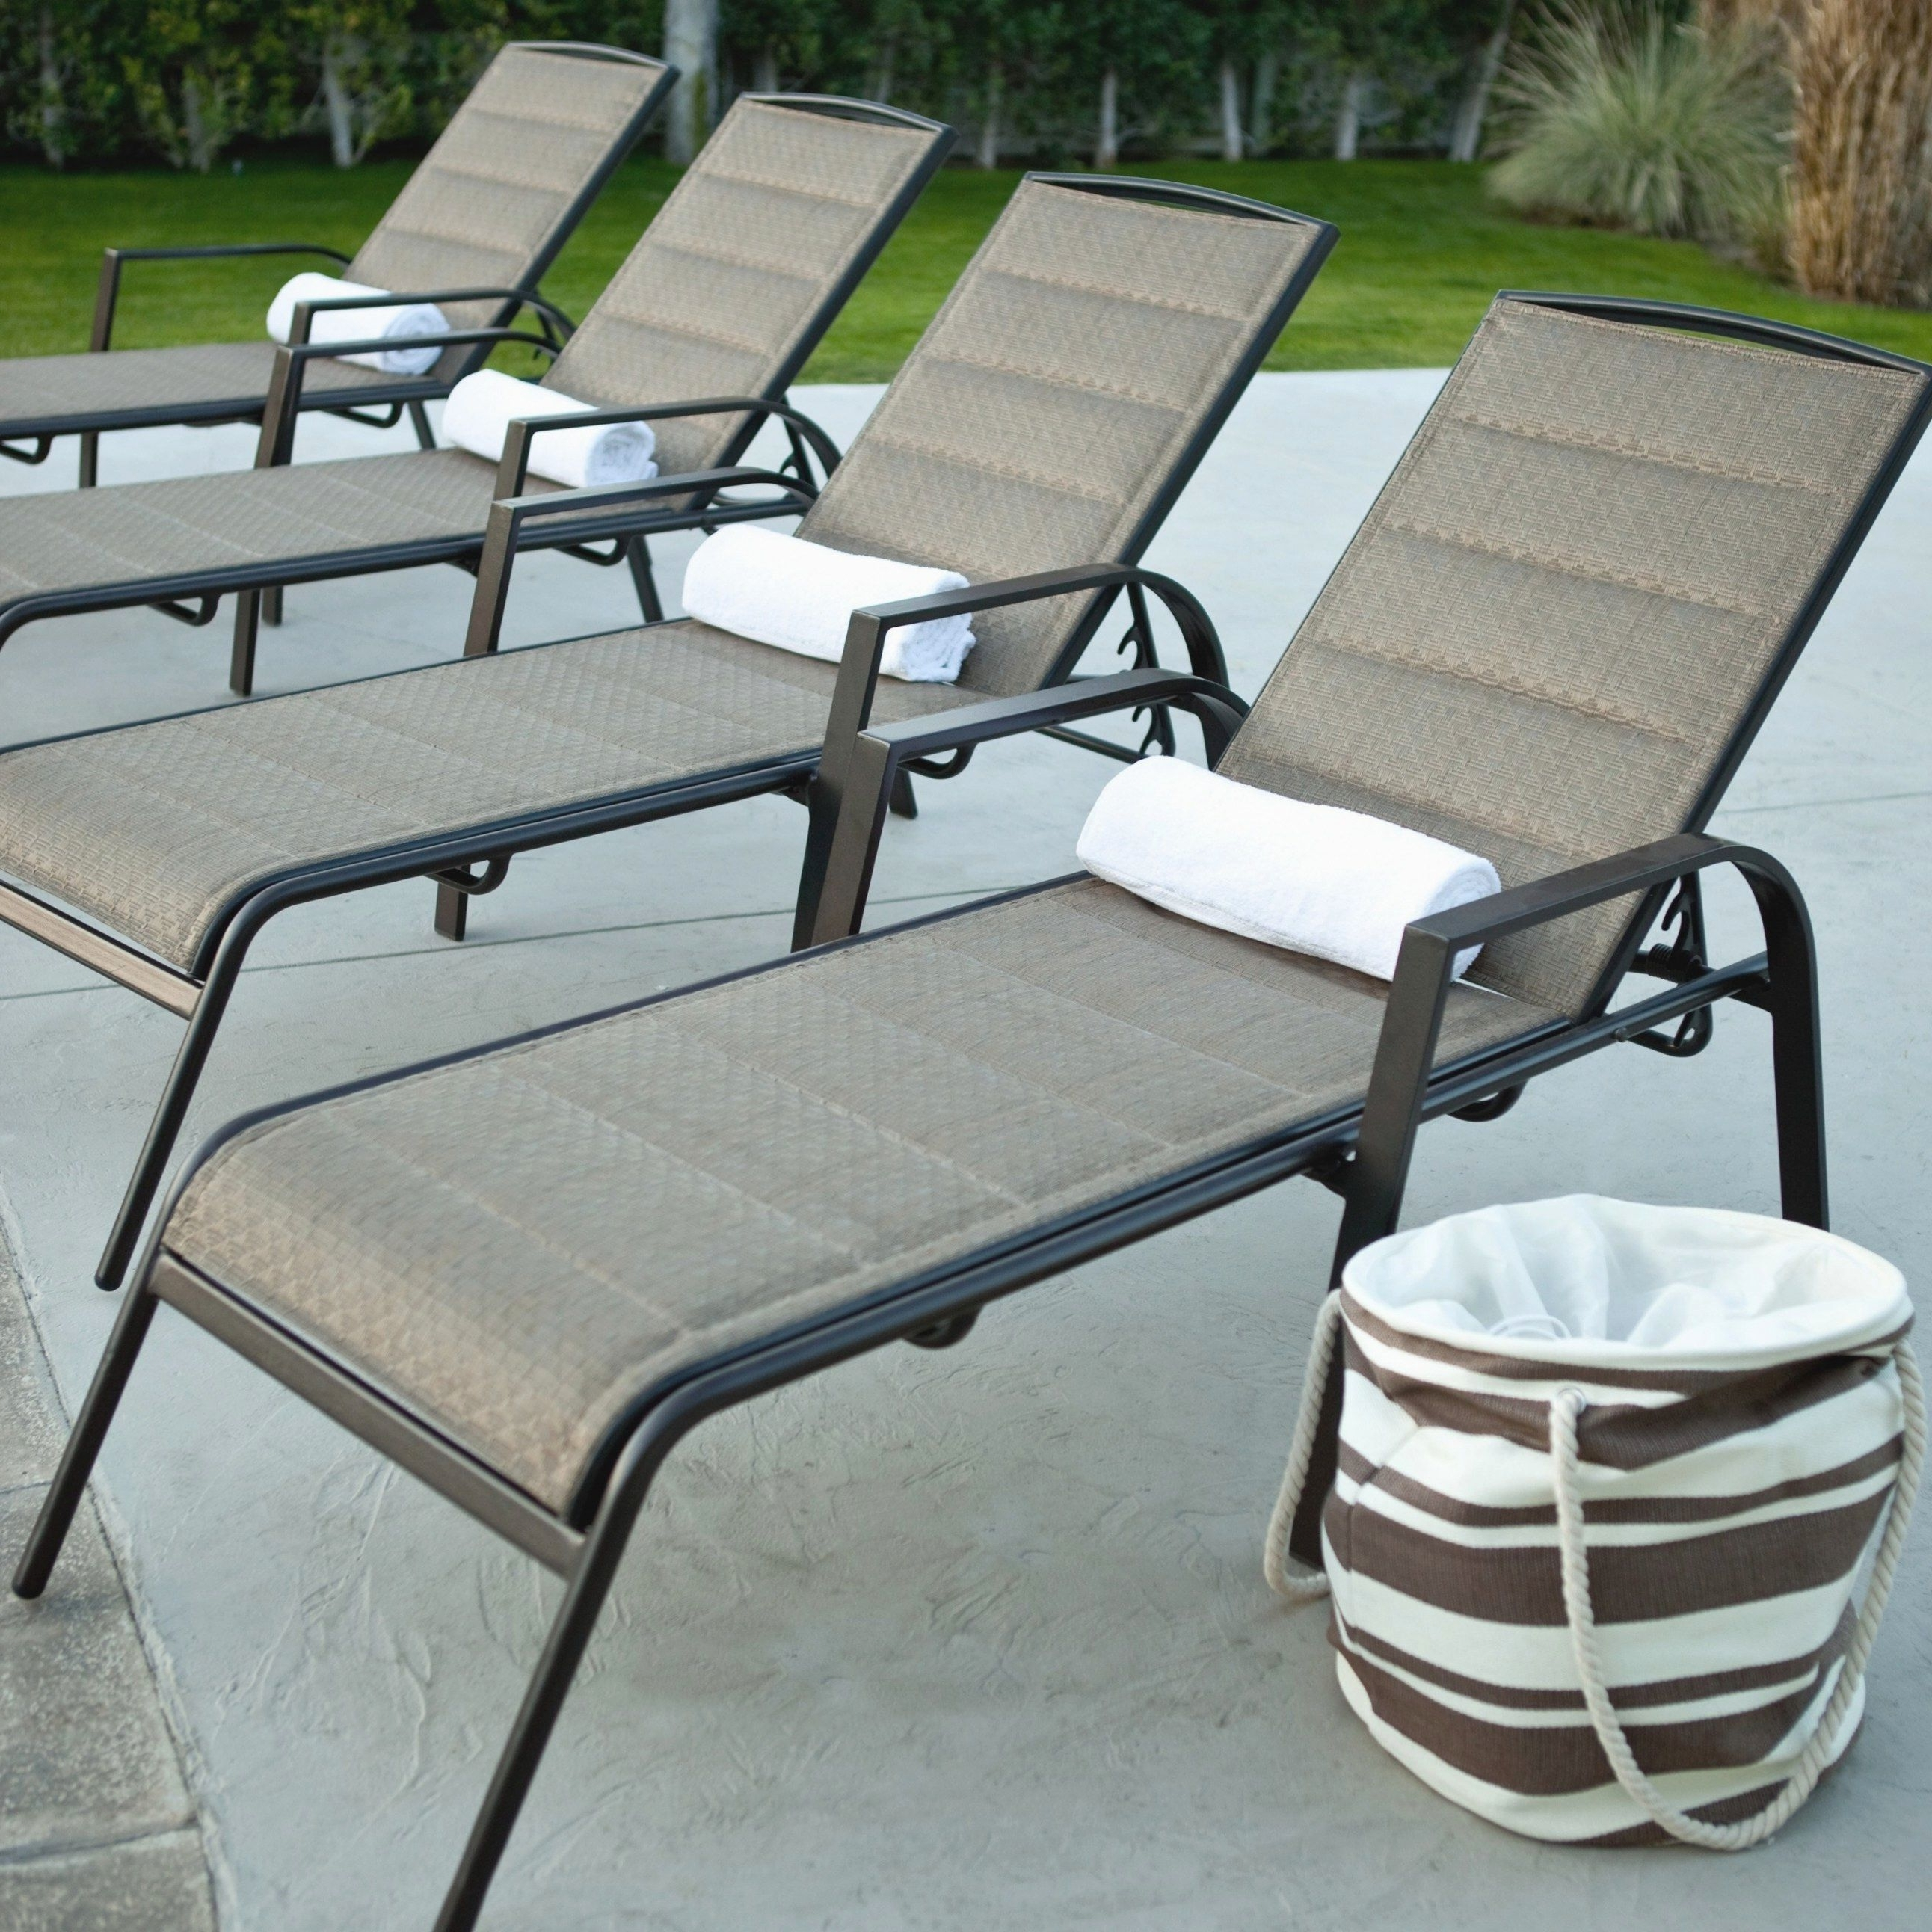 Outdoor Mesh Chaise Lounge Chairs Throughout Newest Outdoor Chaise Lounge Chairs Under 100 Modern Fresh Ideas (View 8 of 15)